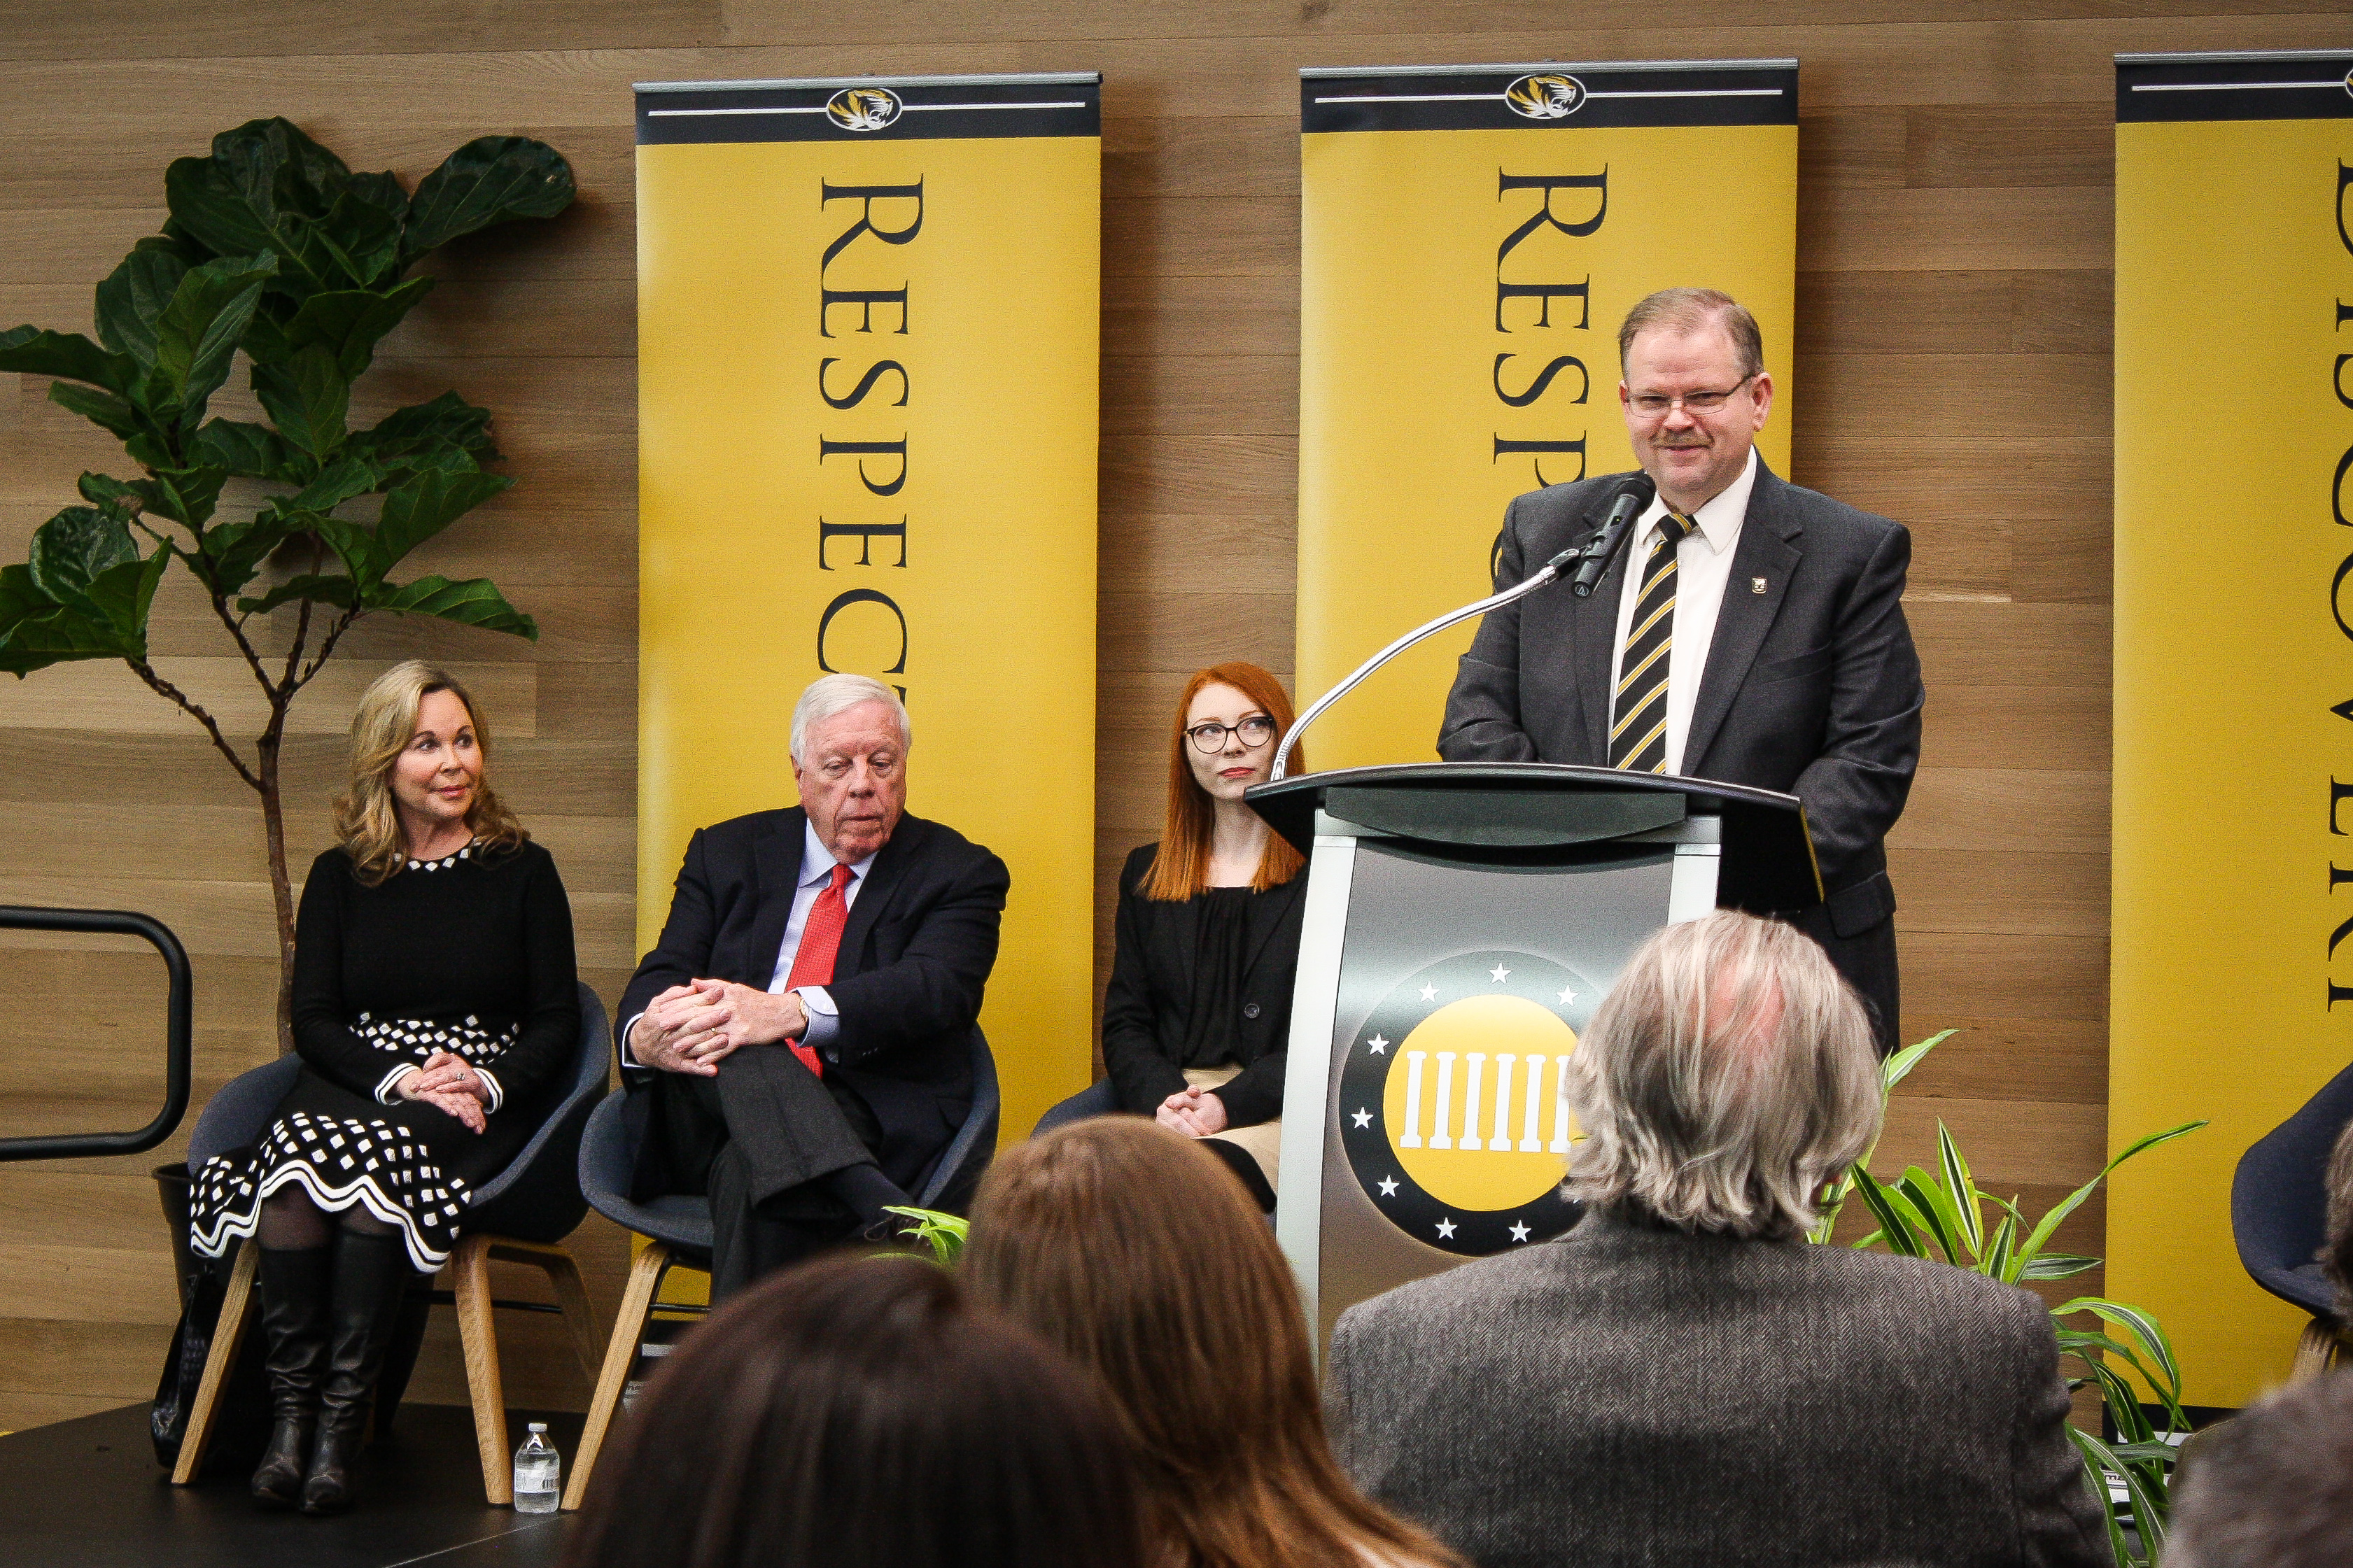 During the press conference, Chancellor Alexander N. Cartwright said that the support from the Kinder Foundation has established Mizzou as a global leader in the study of constitutional democracy.